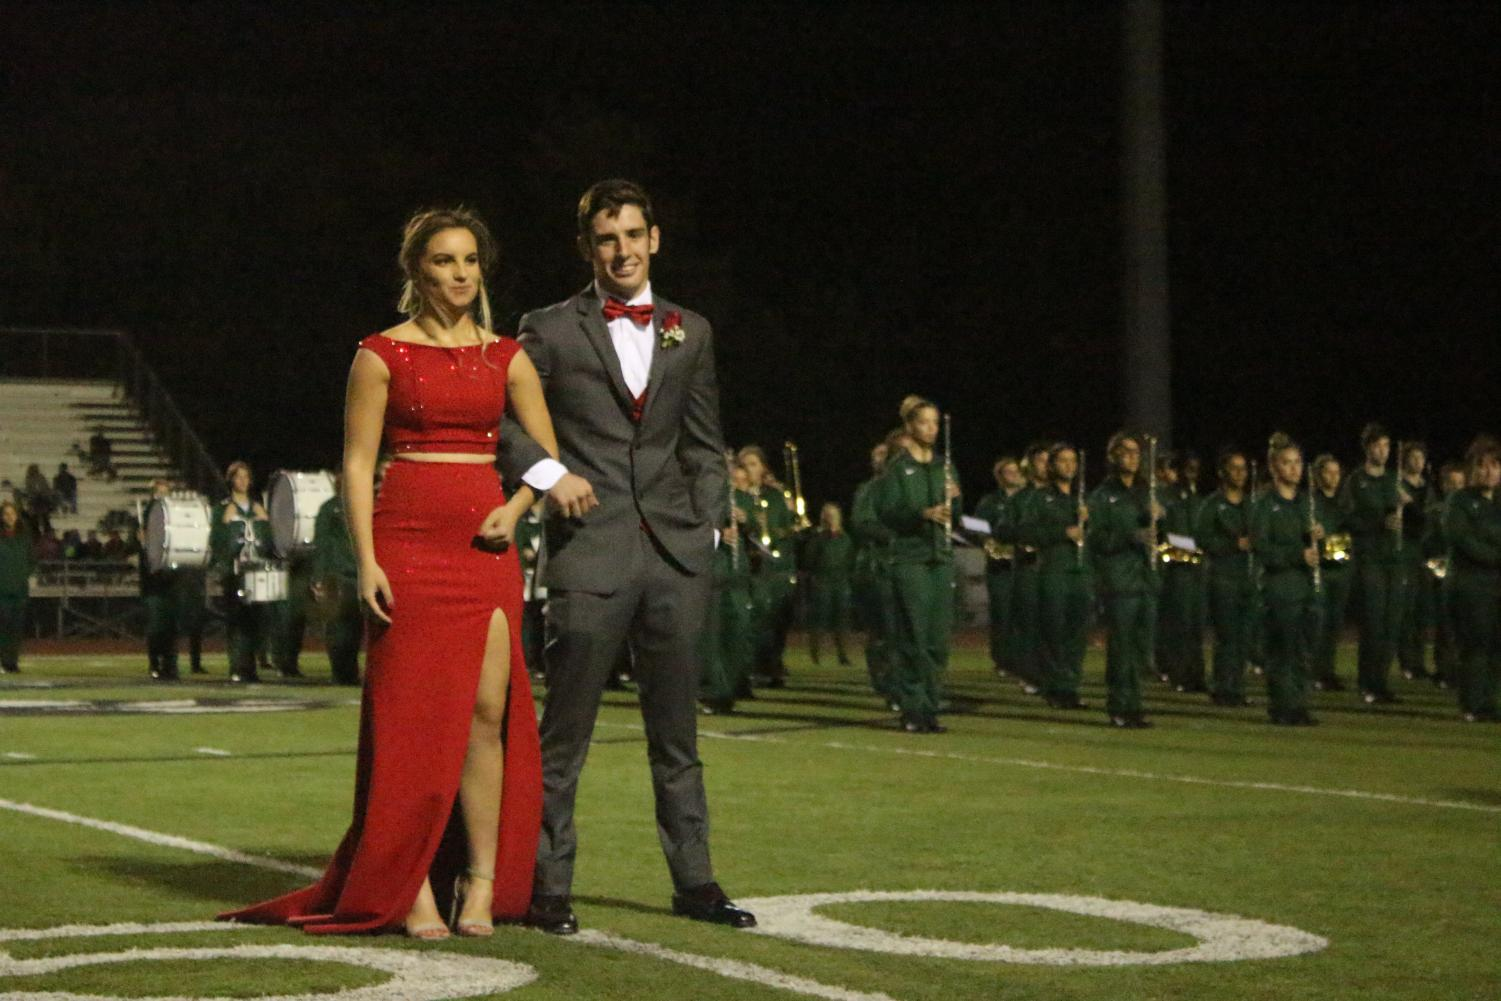 Homecoming+queen+and+king+Harli+Lowmaster+and+Cooper+Ross.